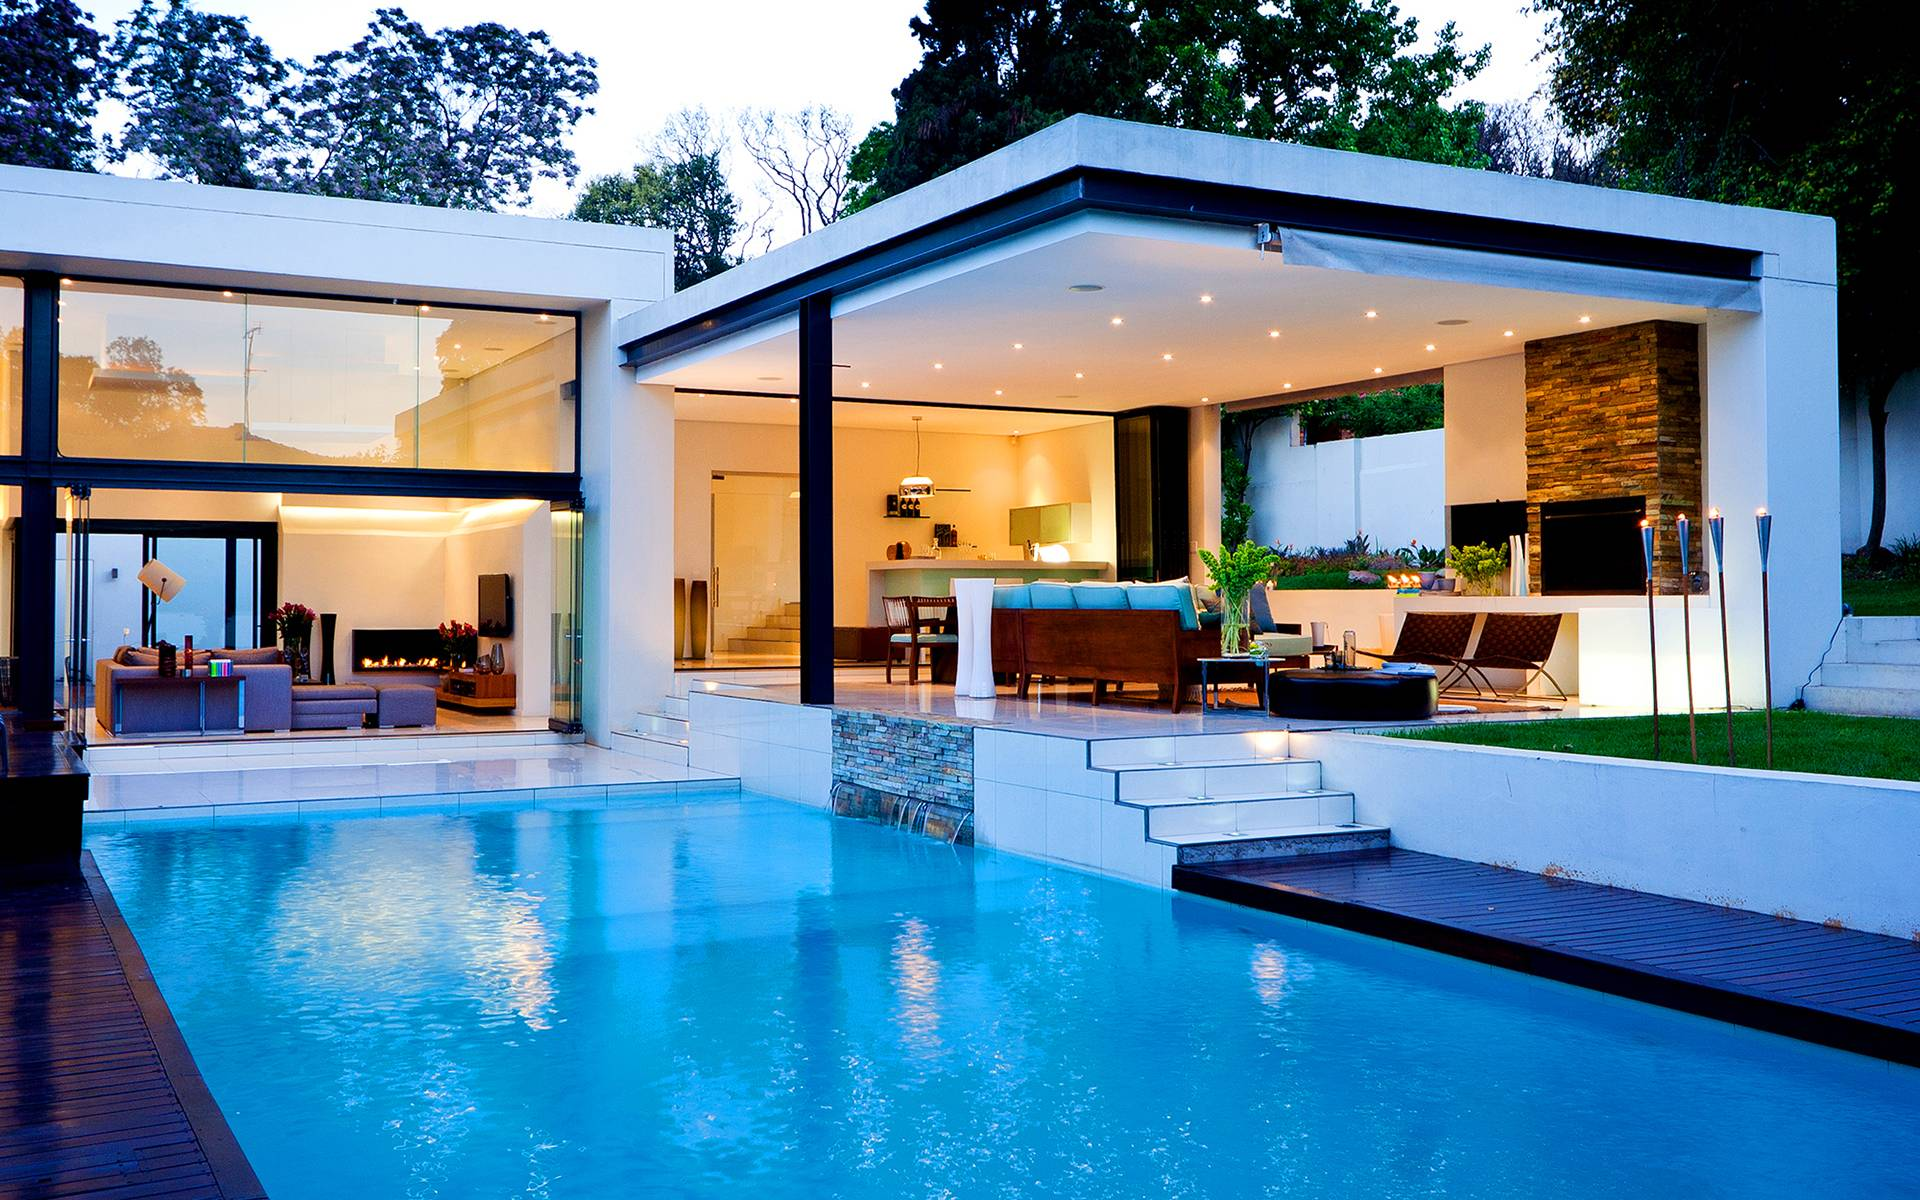 Luxury house pool photos